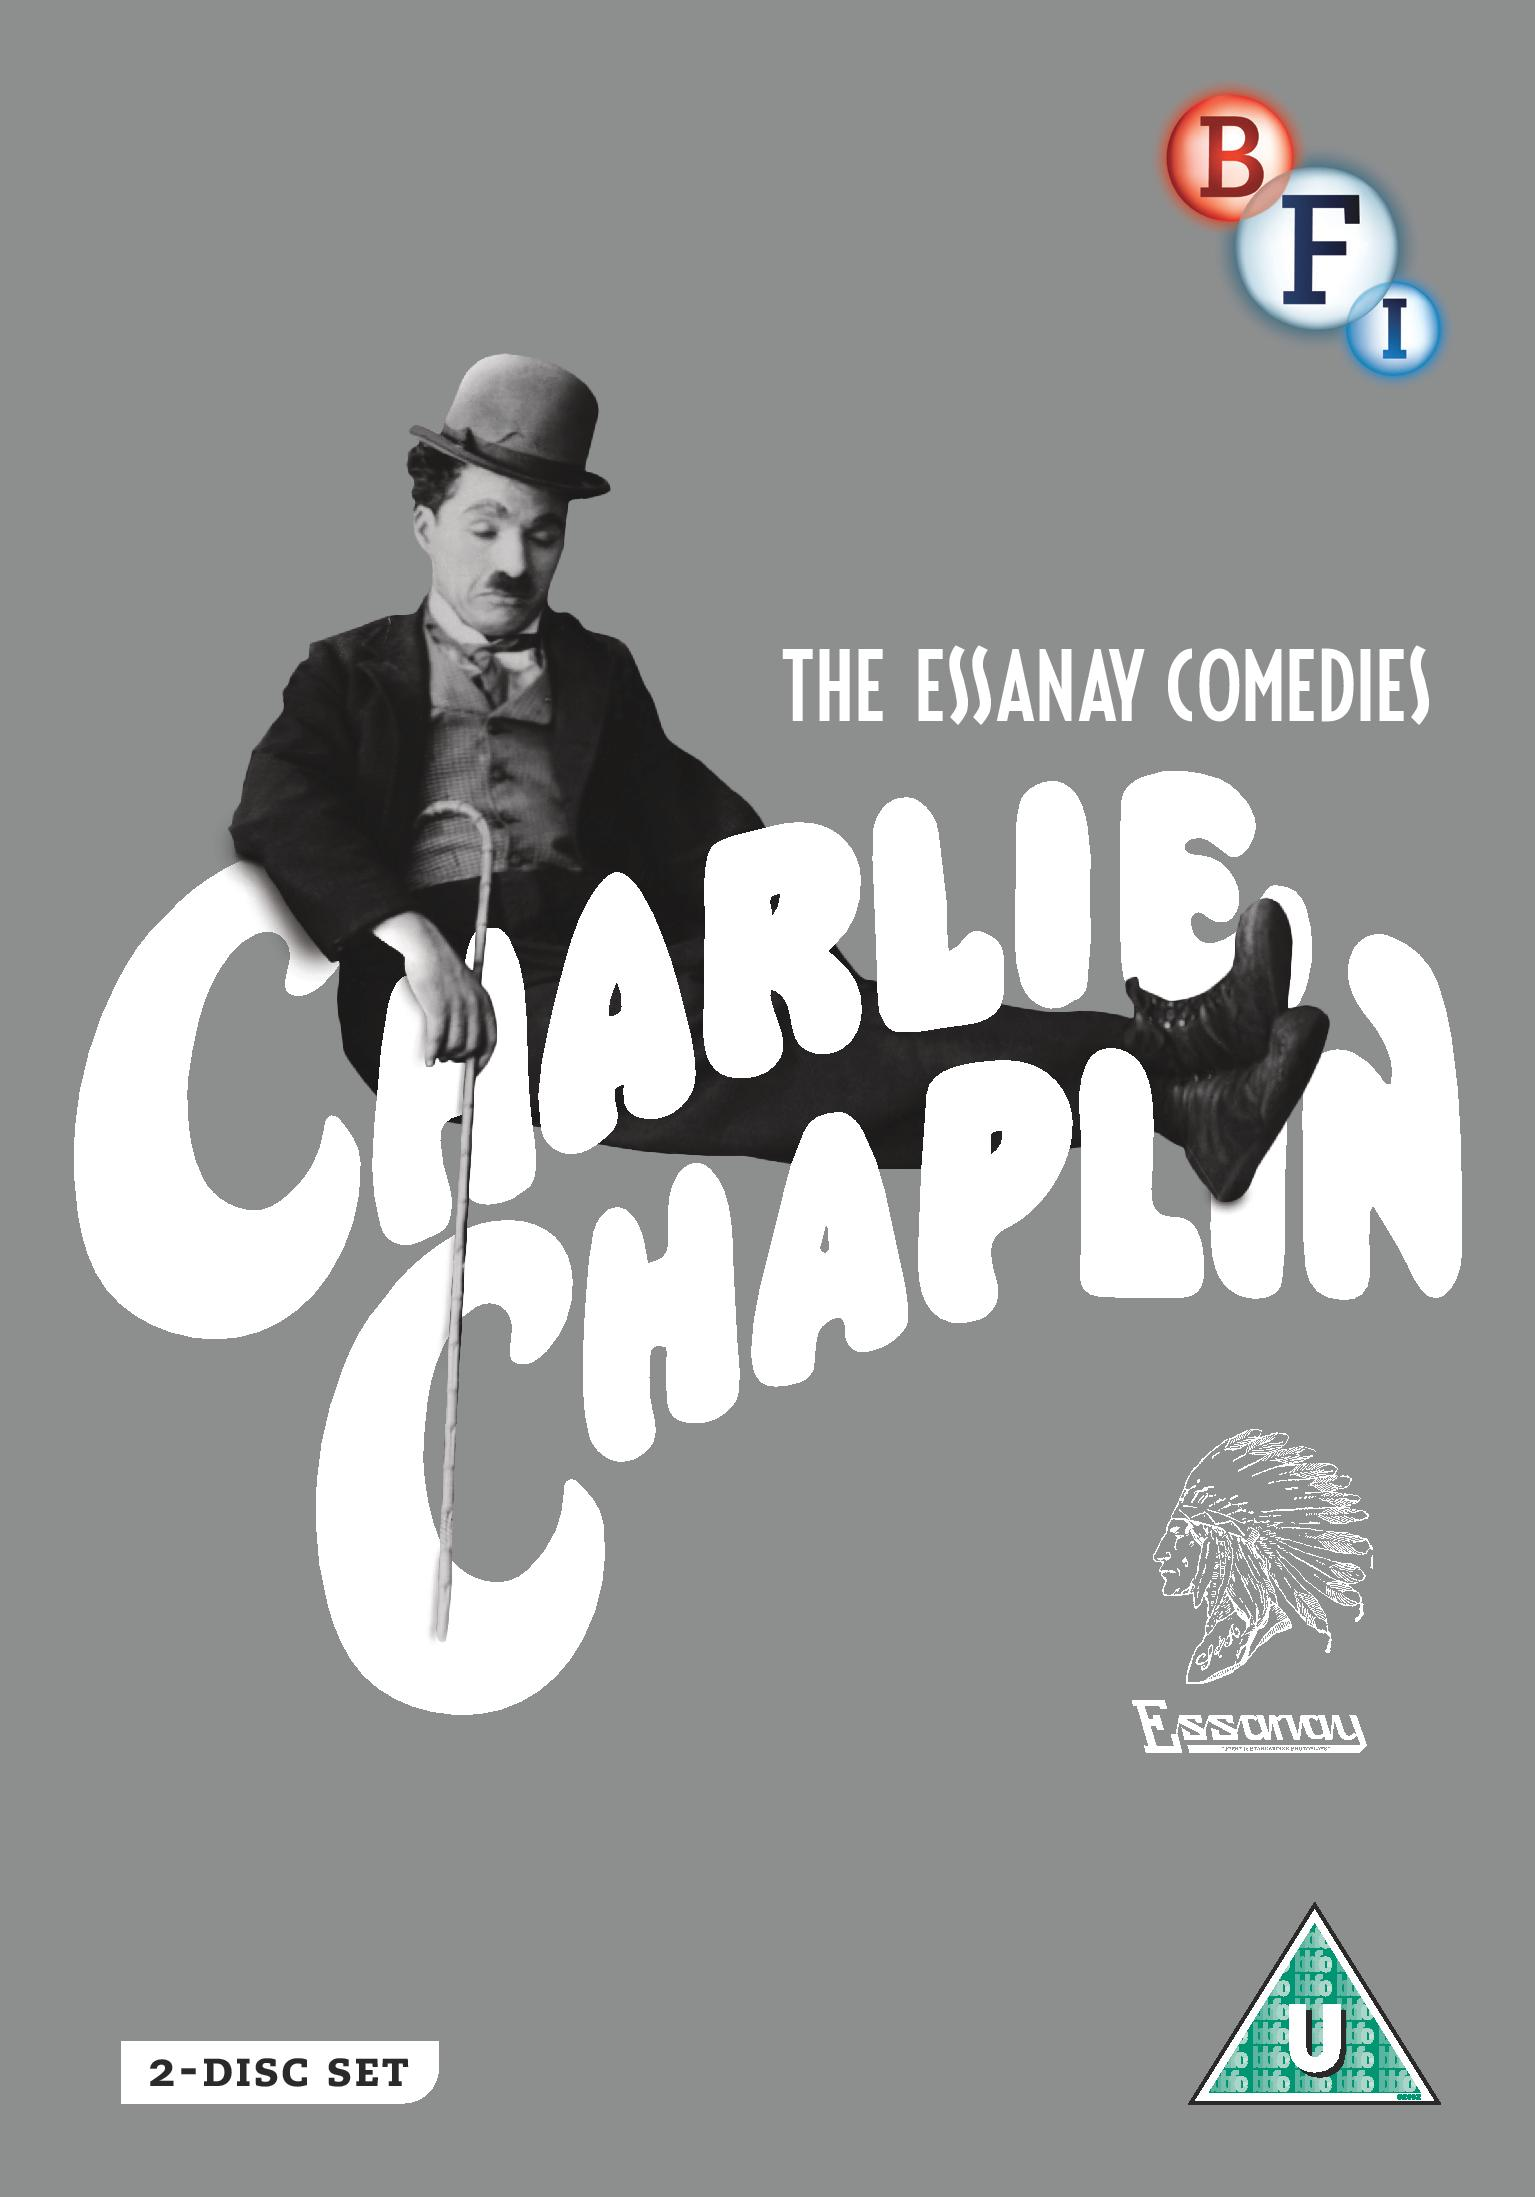 Buy Charlie Chaplin: The Essanay Comedies DVD set